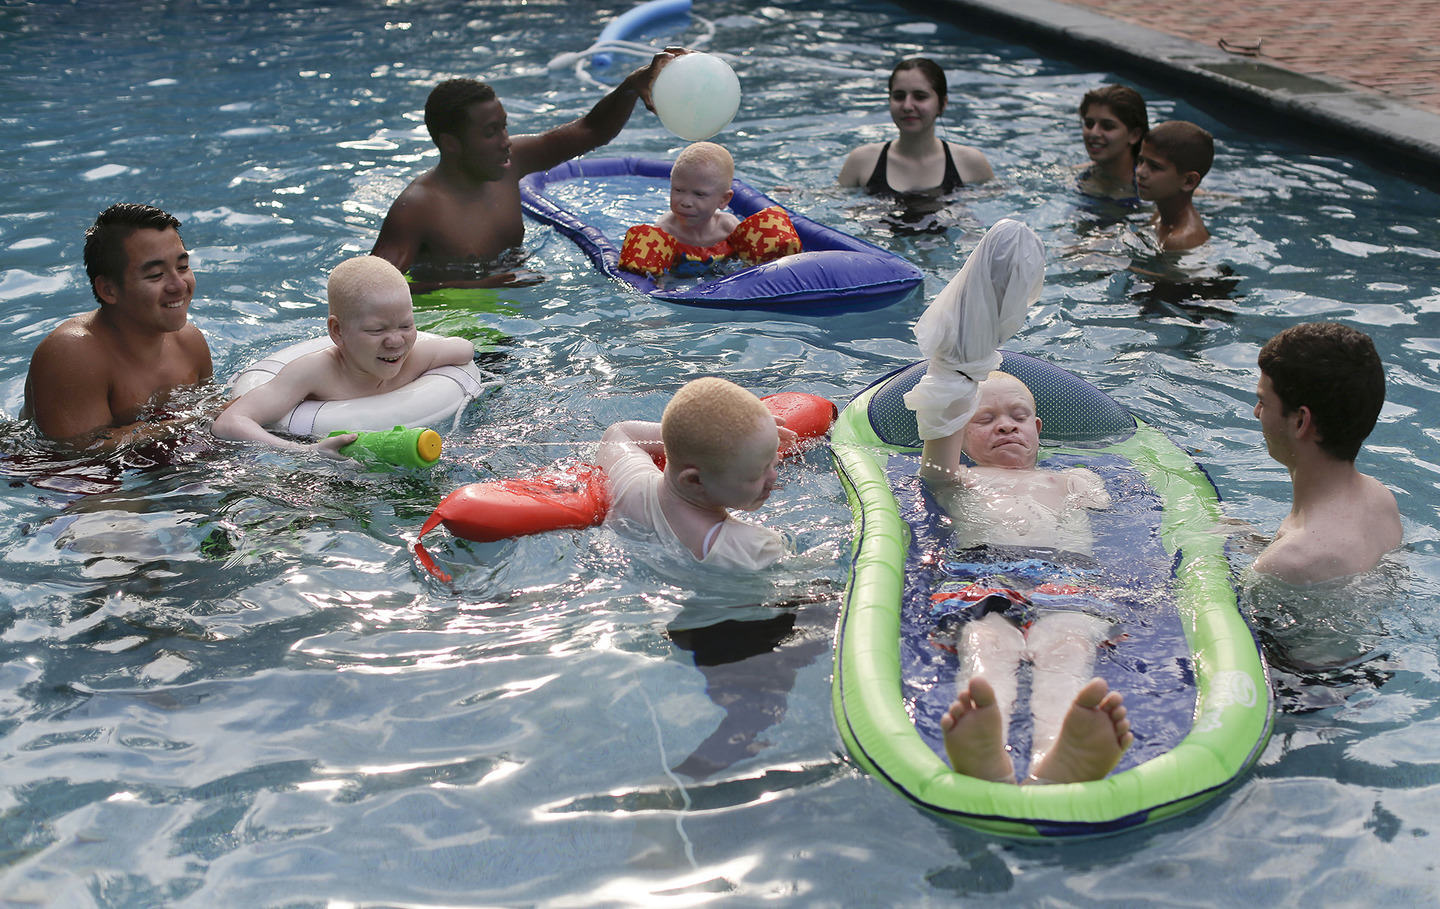 UNILAD albino44 Hunted Albino Kids From Tanzania Find Happy New Life In New York